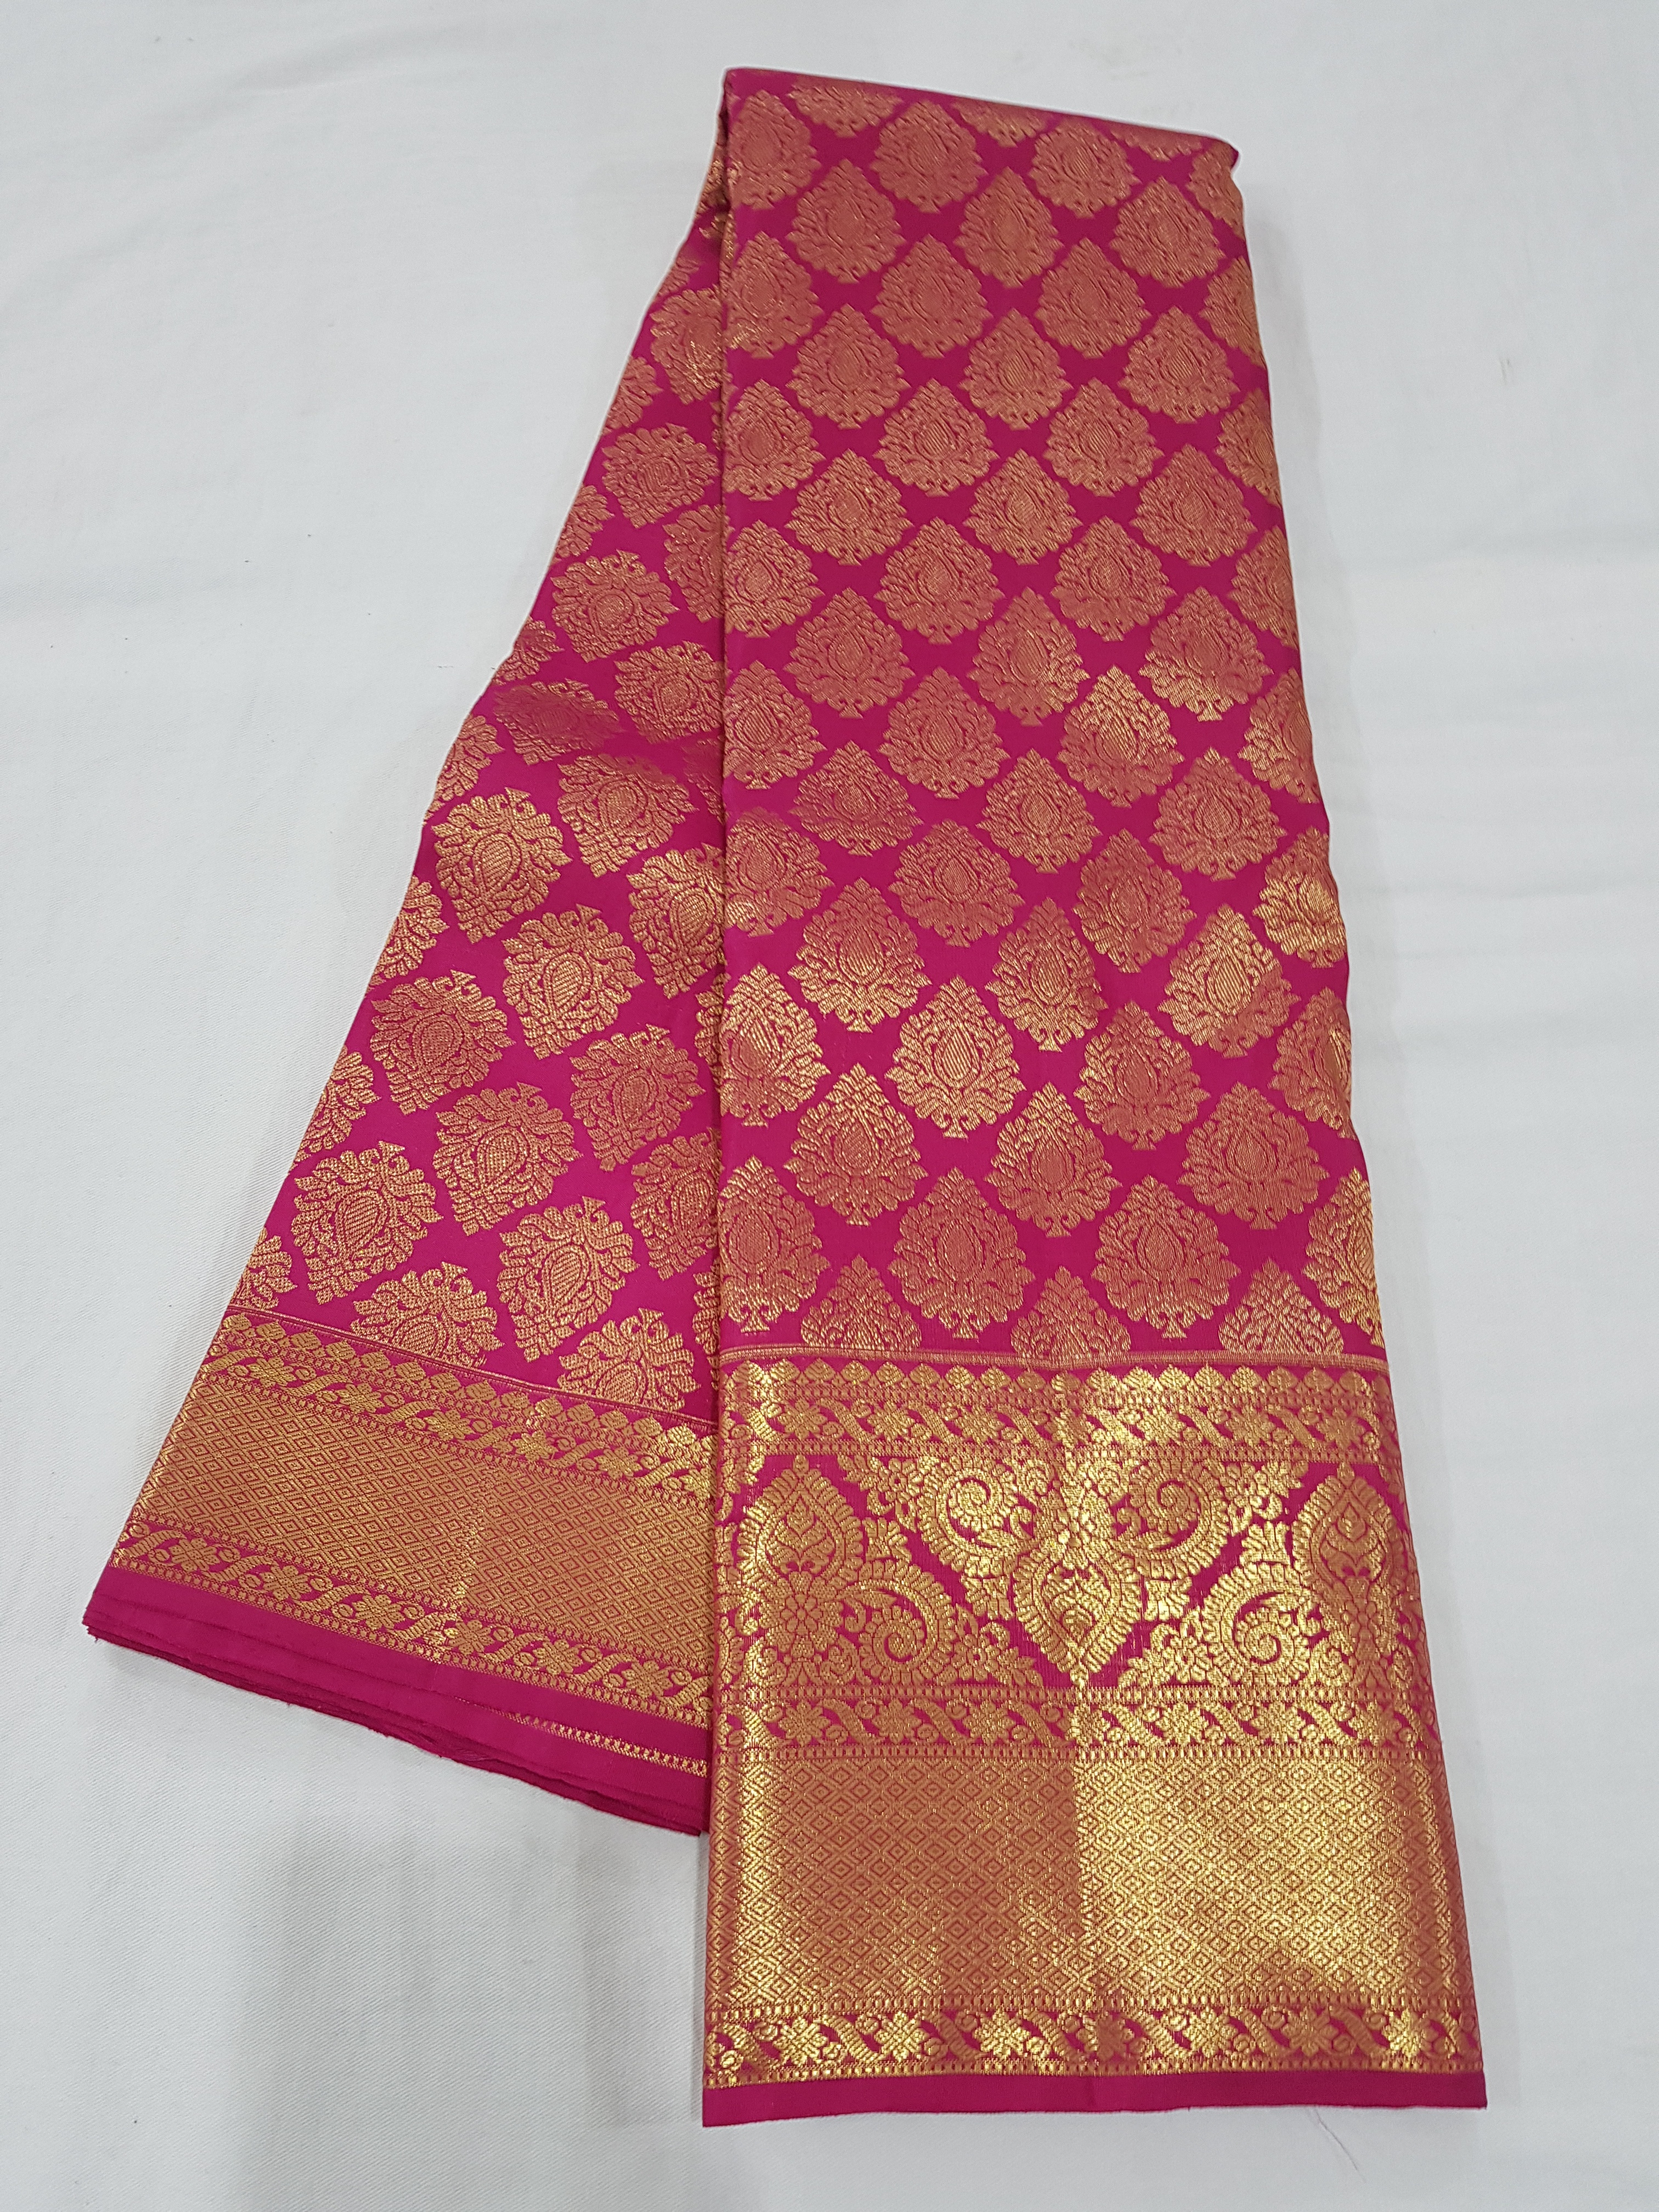 b5db58b7c6 Kanchipuram Lakshaya Silk Sarees is the one of the leading Manufacturer of Kanchipuram  Silk Sarees. You can get variety of kanchipuram silk sarees in one ...